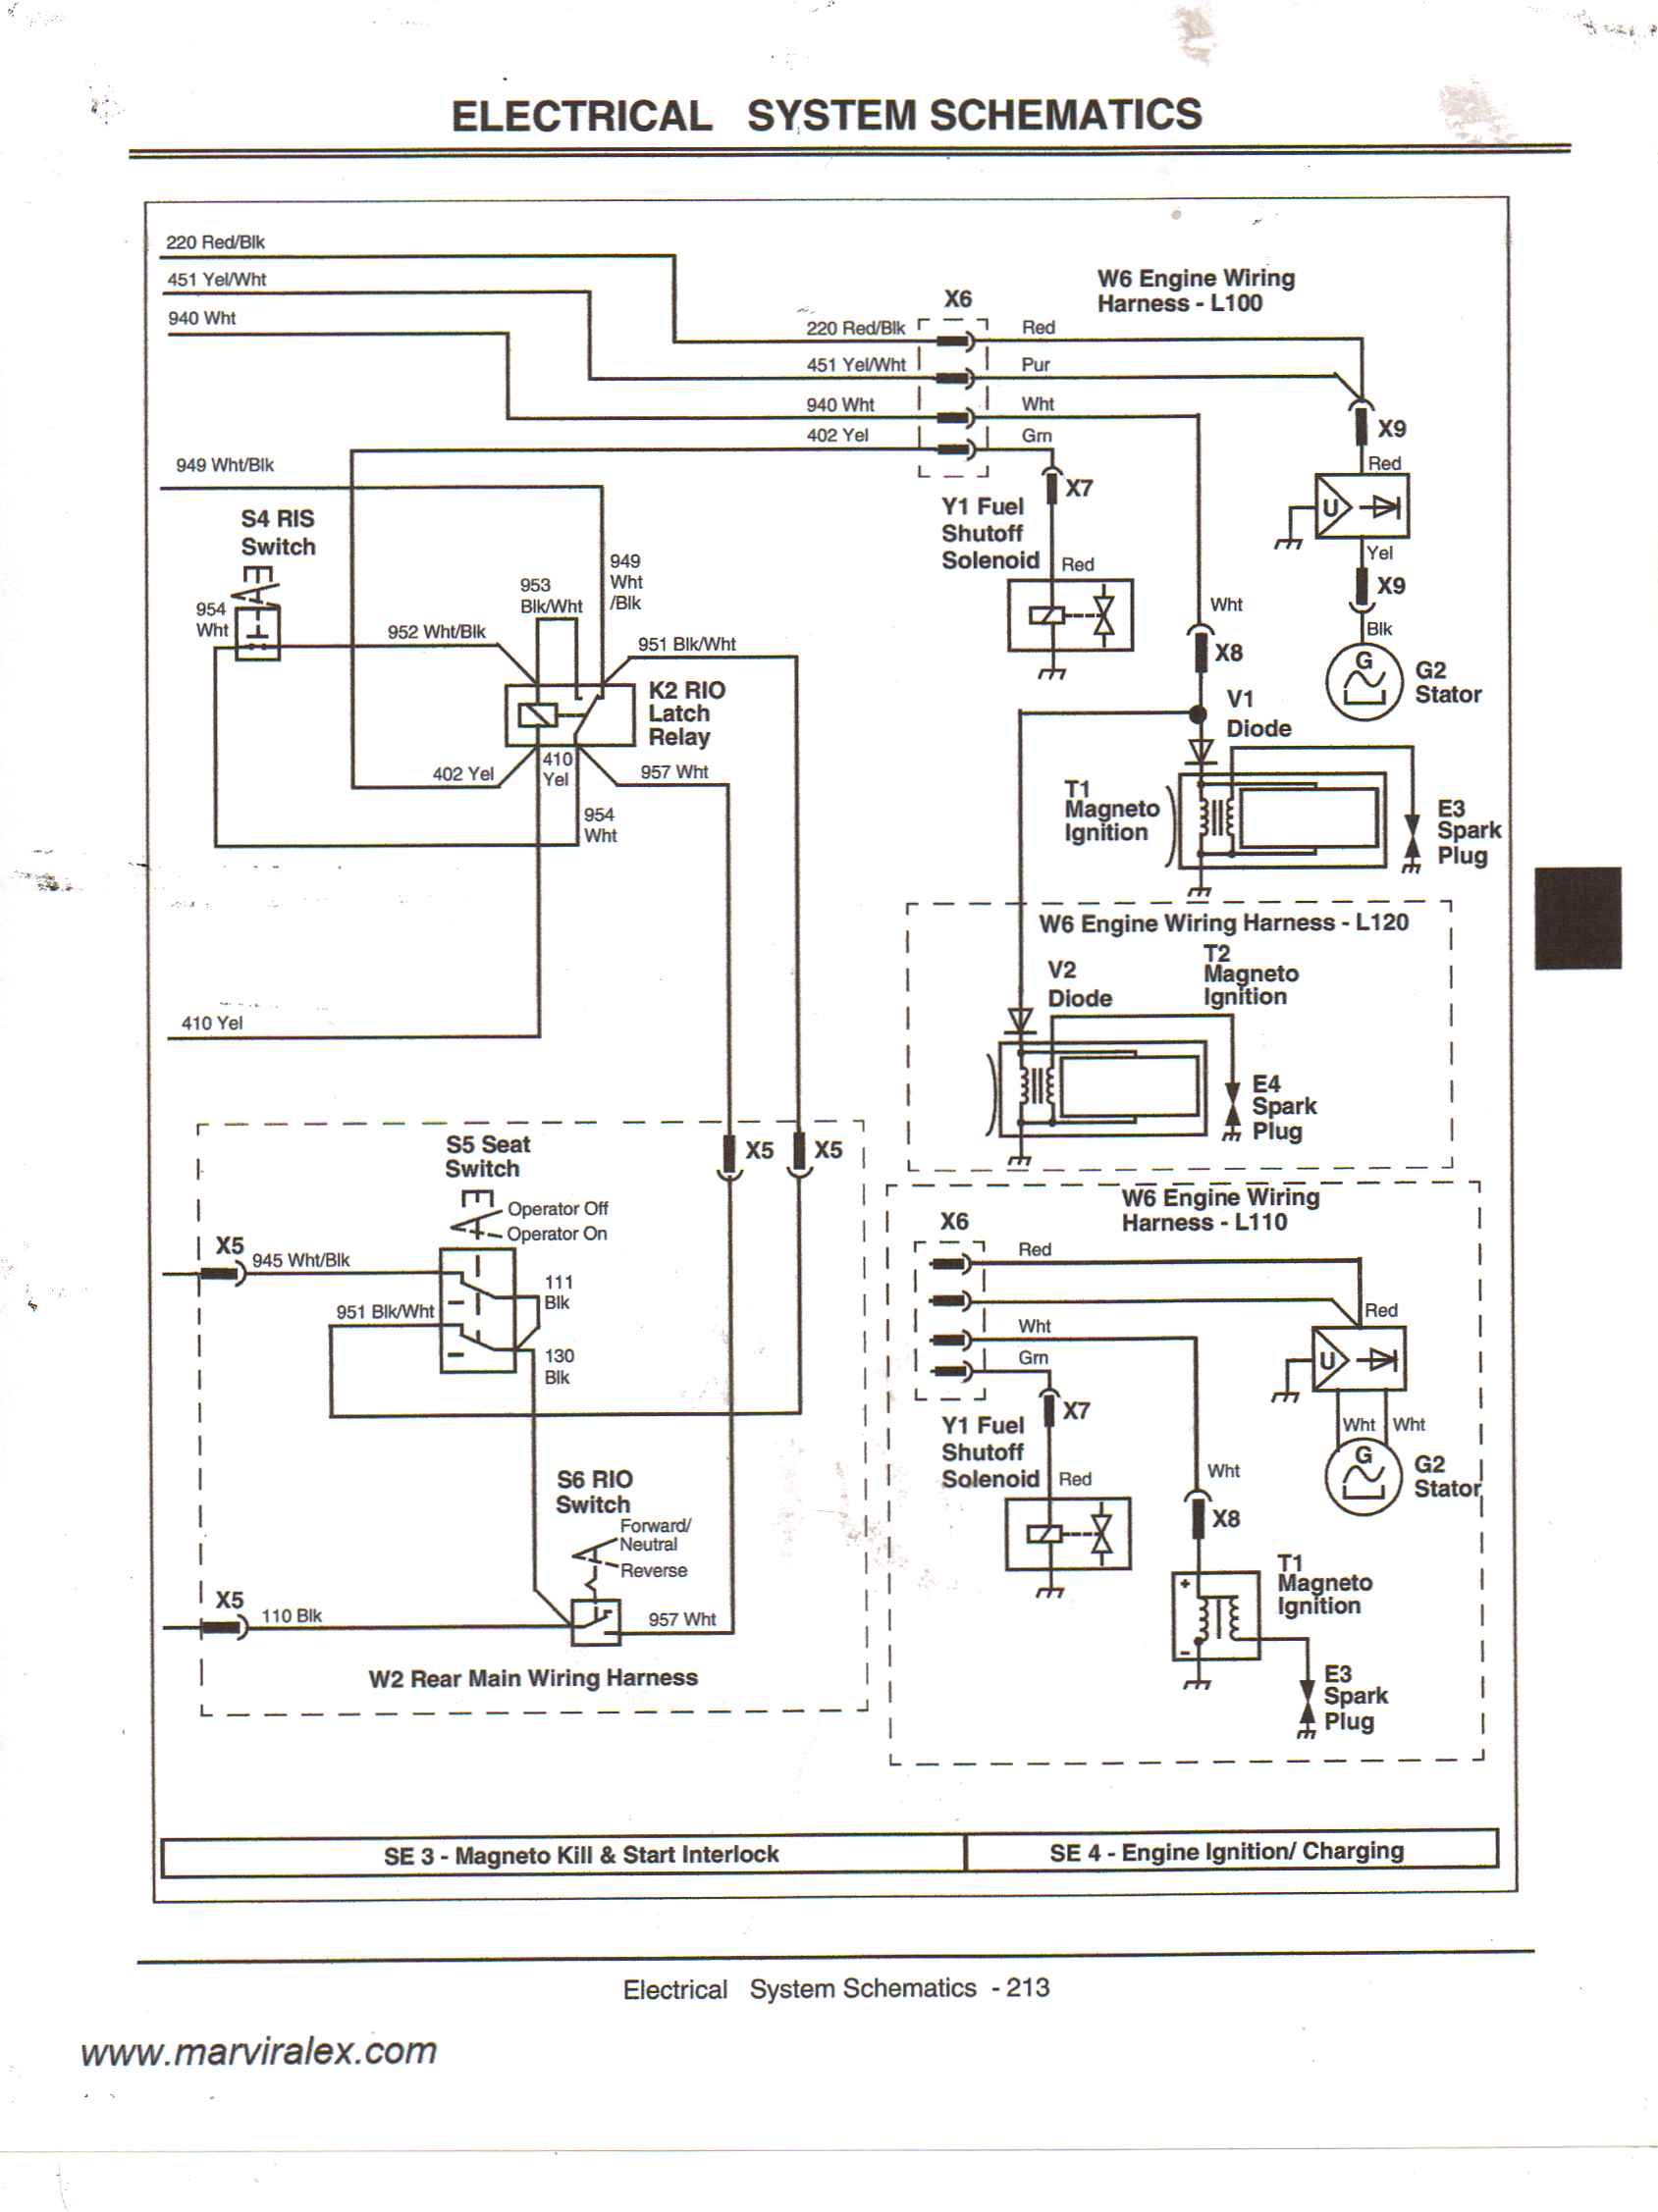 Diagram Projection 111 Wiring Diagram Full Version Hd Quality Wiring Diagram Mediagrame Pasticceriadefiorenze It